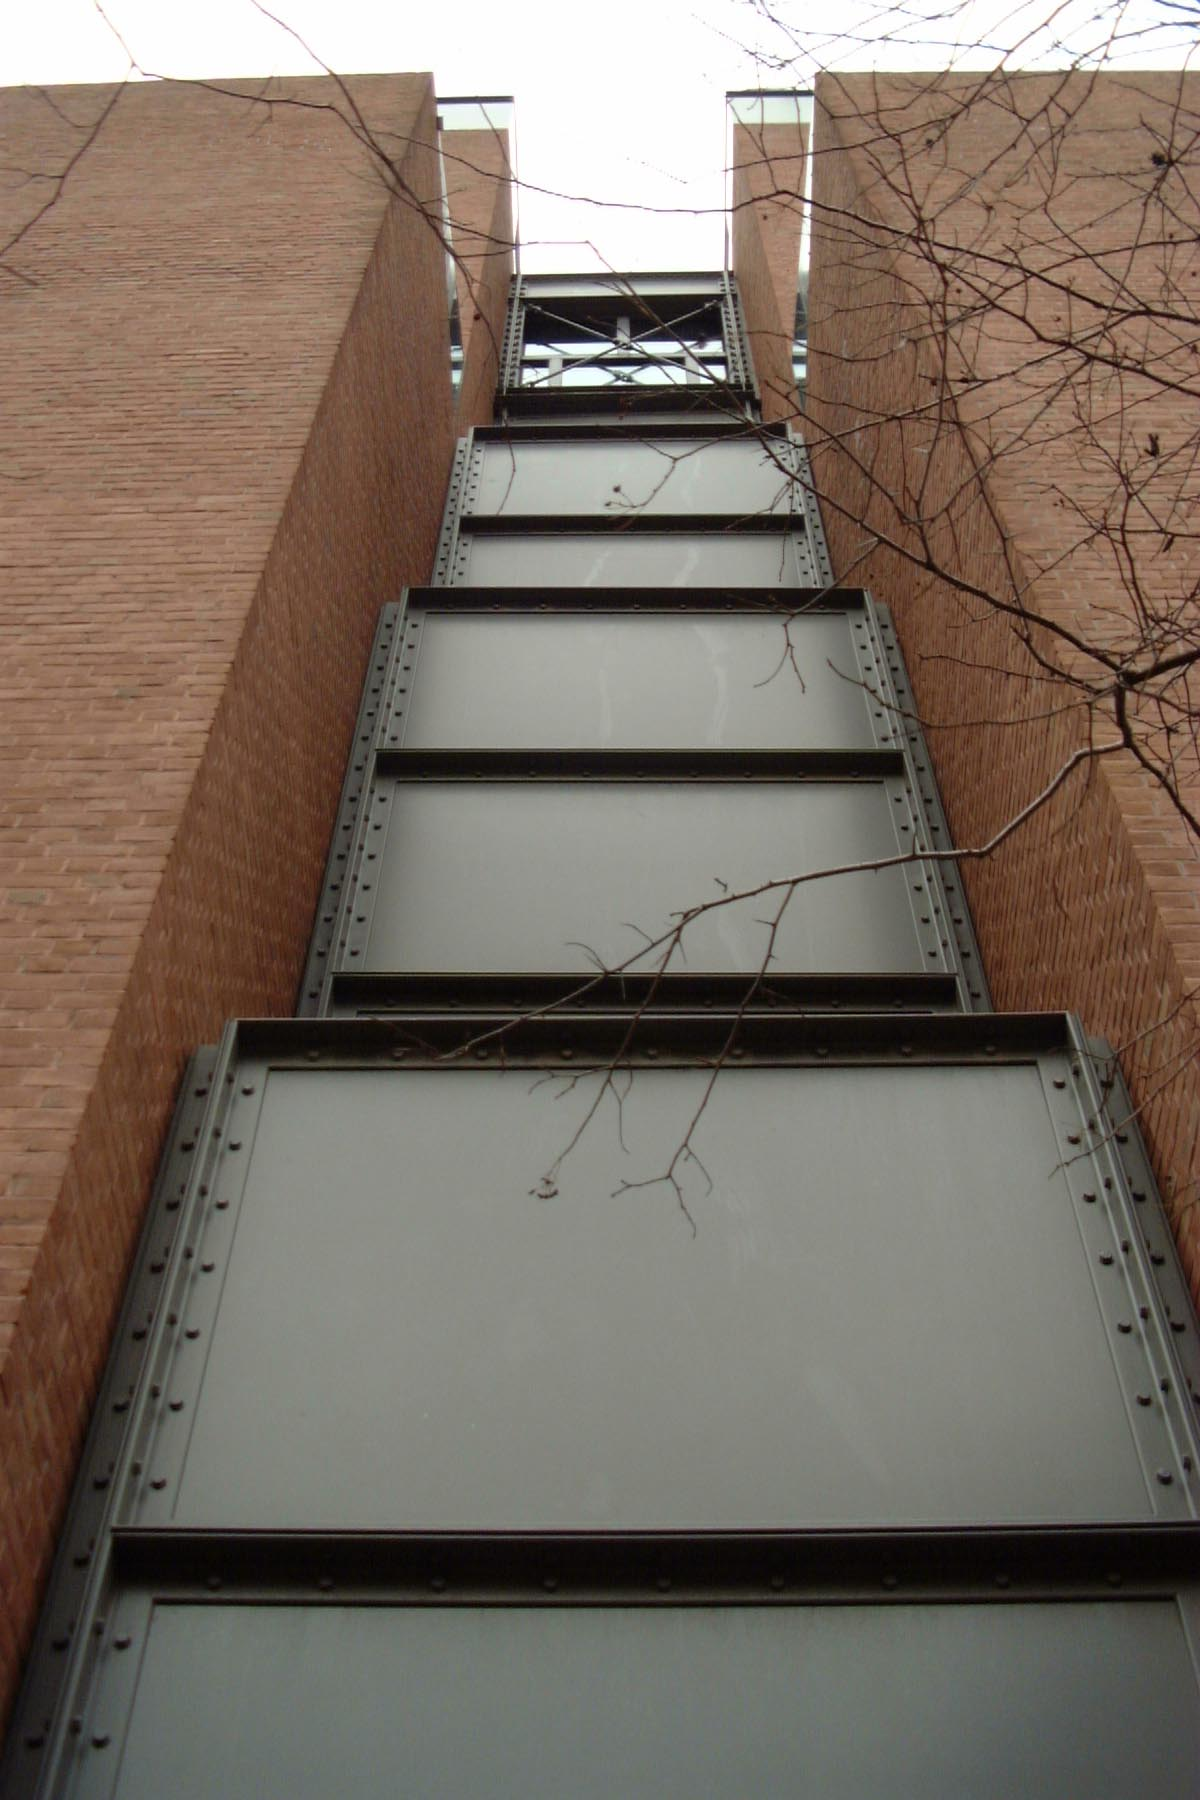 Photograph of exterior wall of the United States Holocaust Memorial Museum.